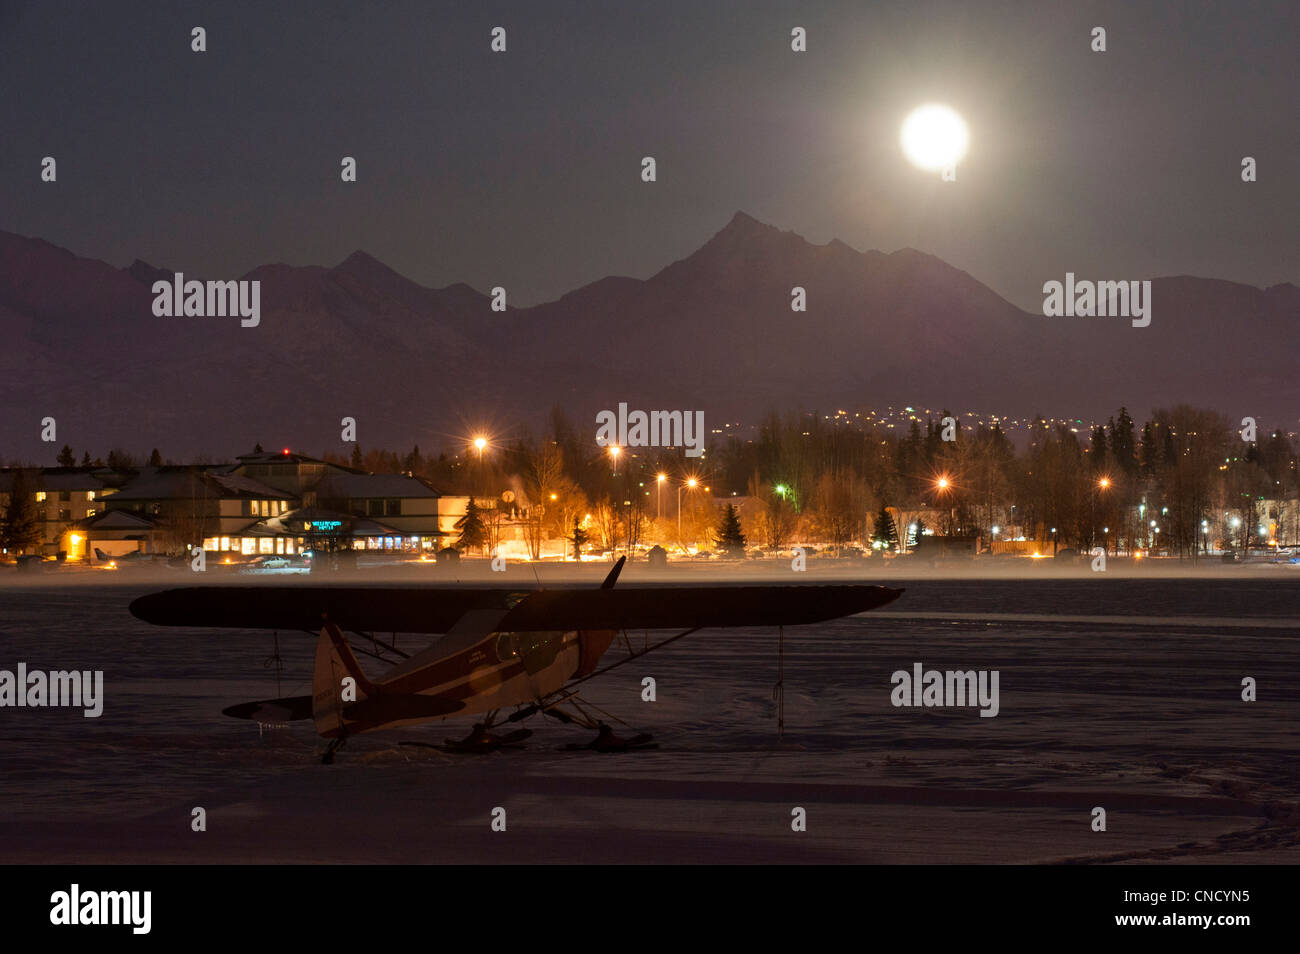 A full moon rises over the Chugach Mountains with a ski plane parked on the frozen Lake Hood in the foreground, Stock Photo